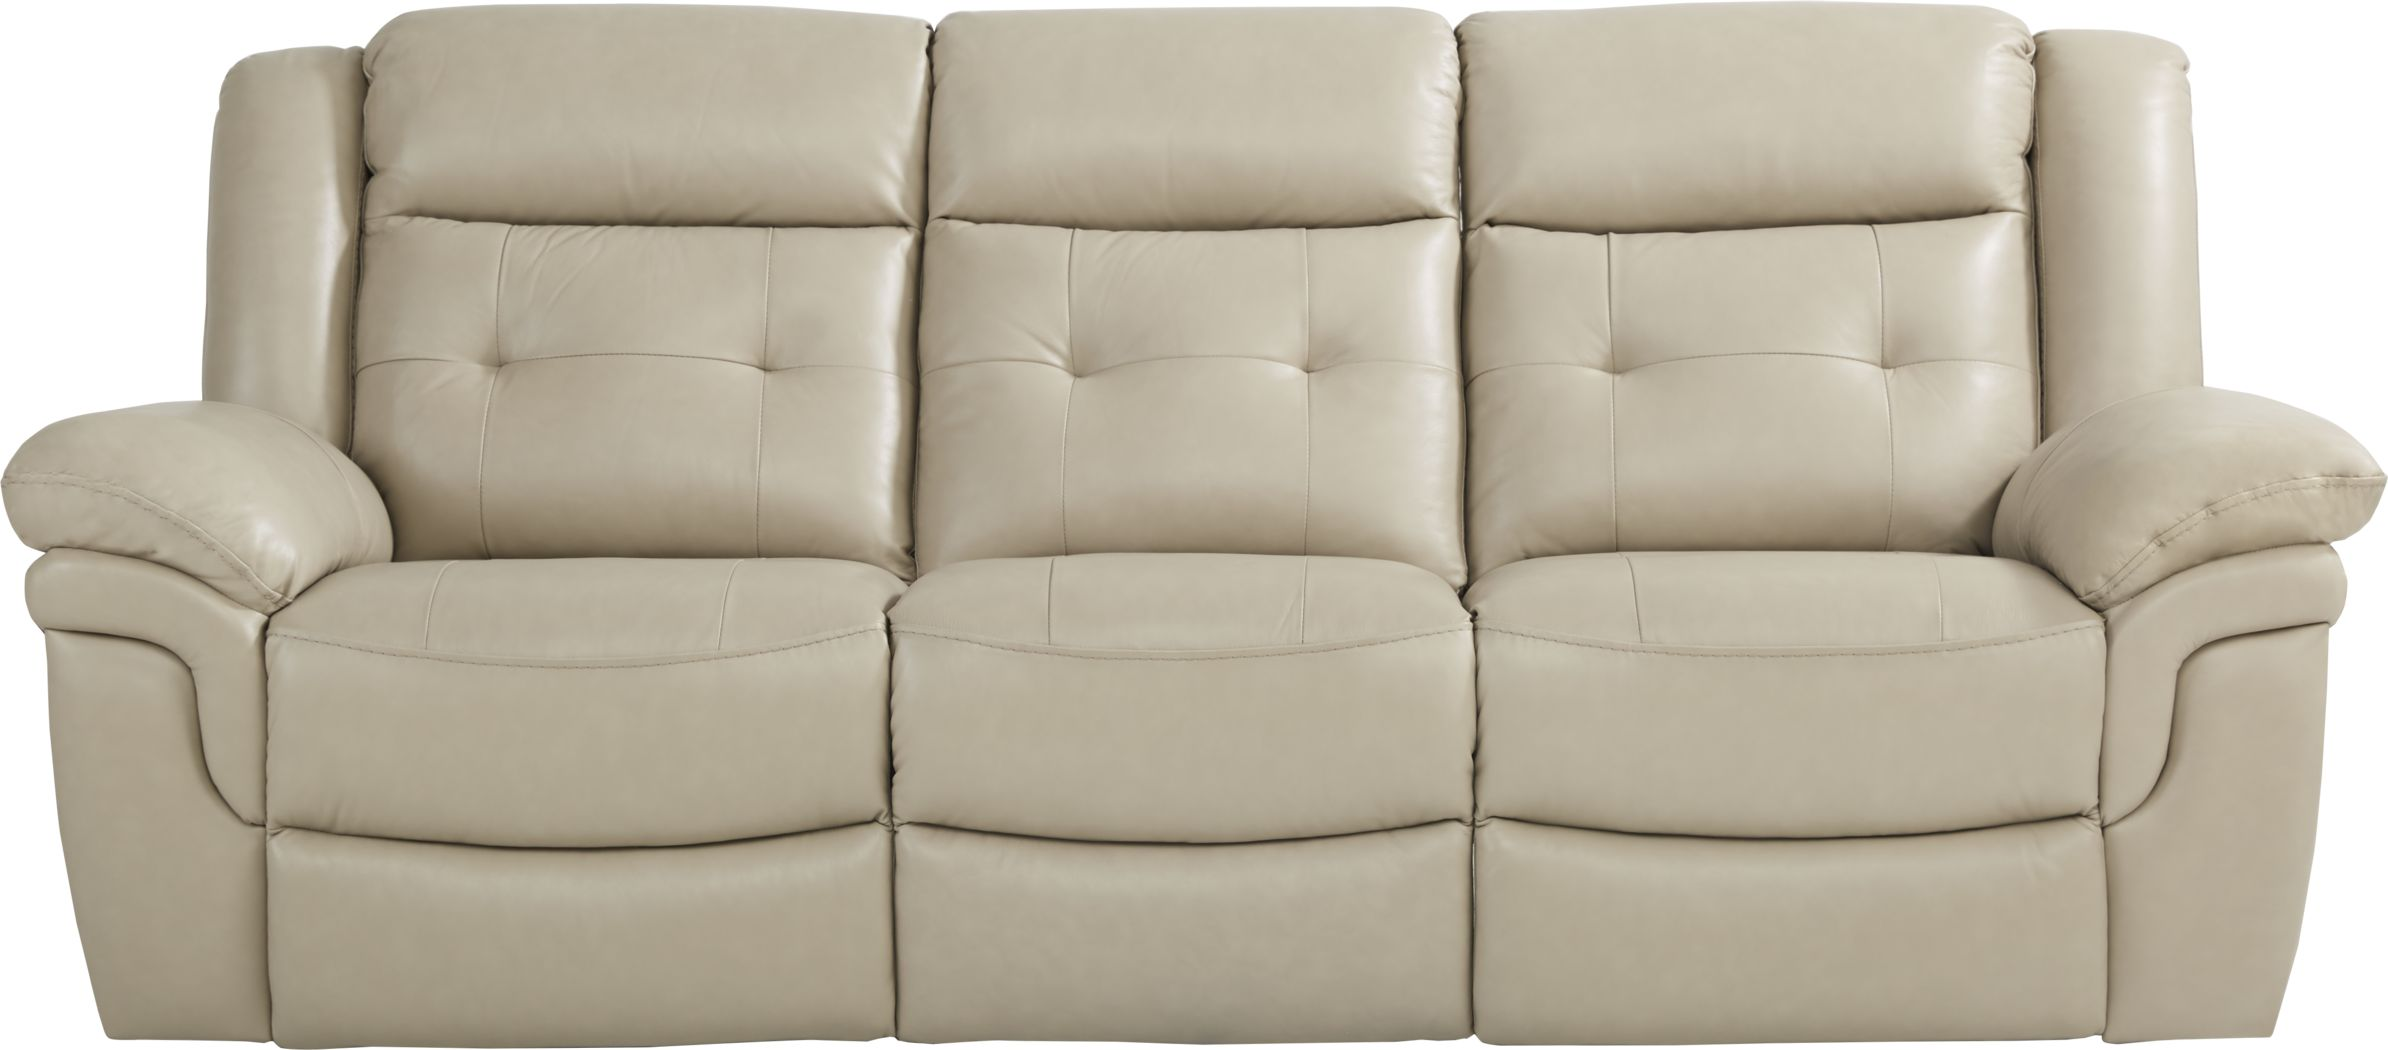 Beige Leather Sofas Couches